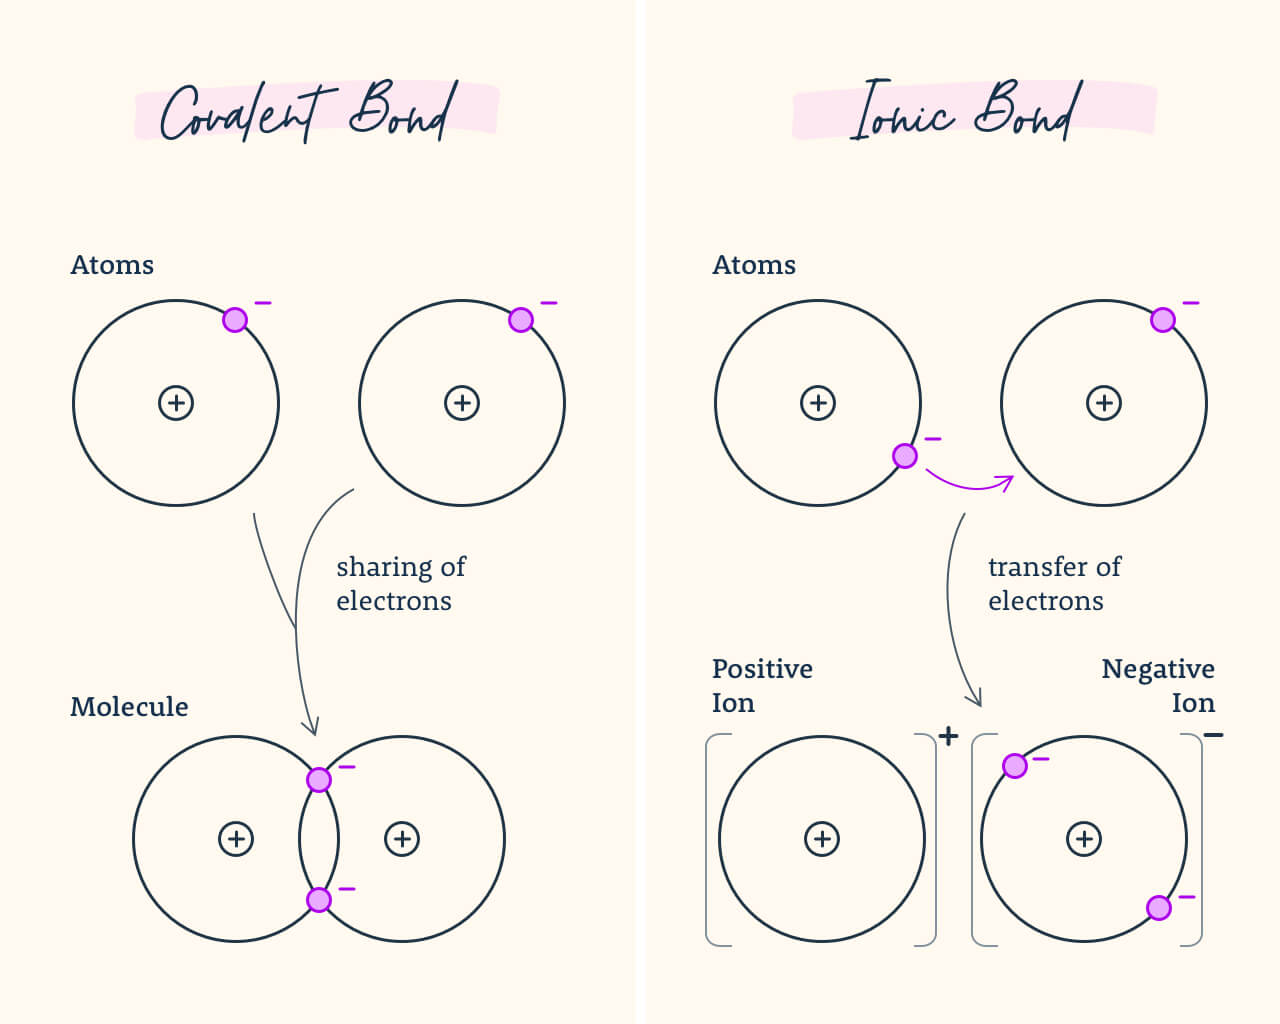 Diagram showing the difference between covalent bonds and ionic bonds.